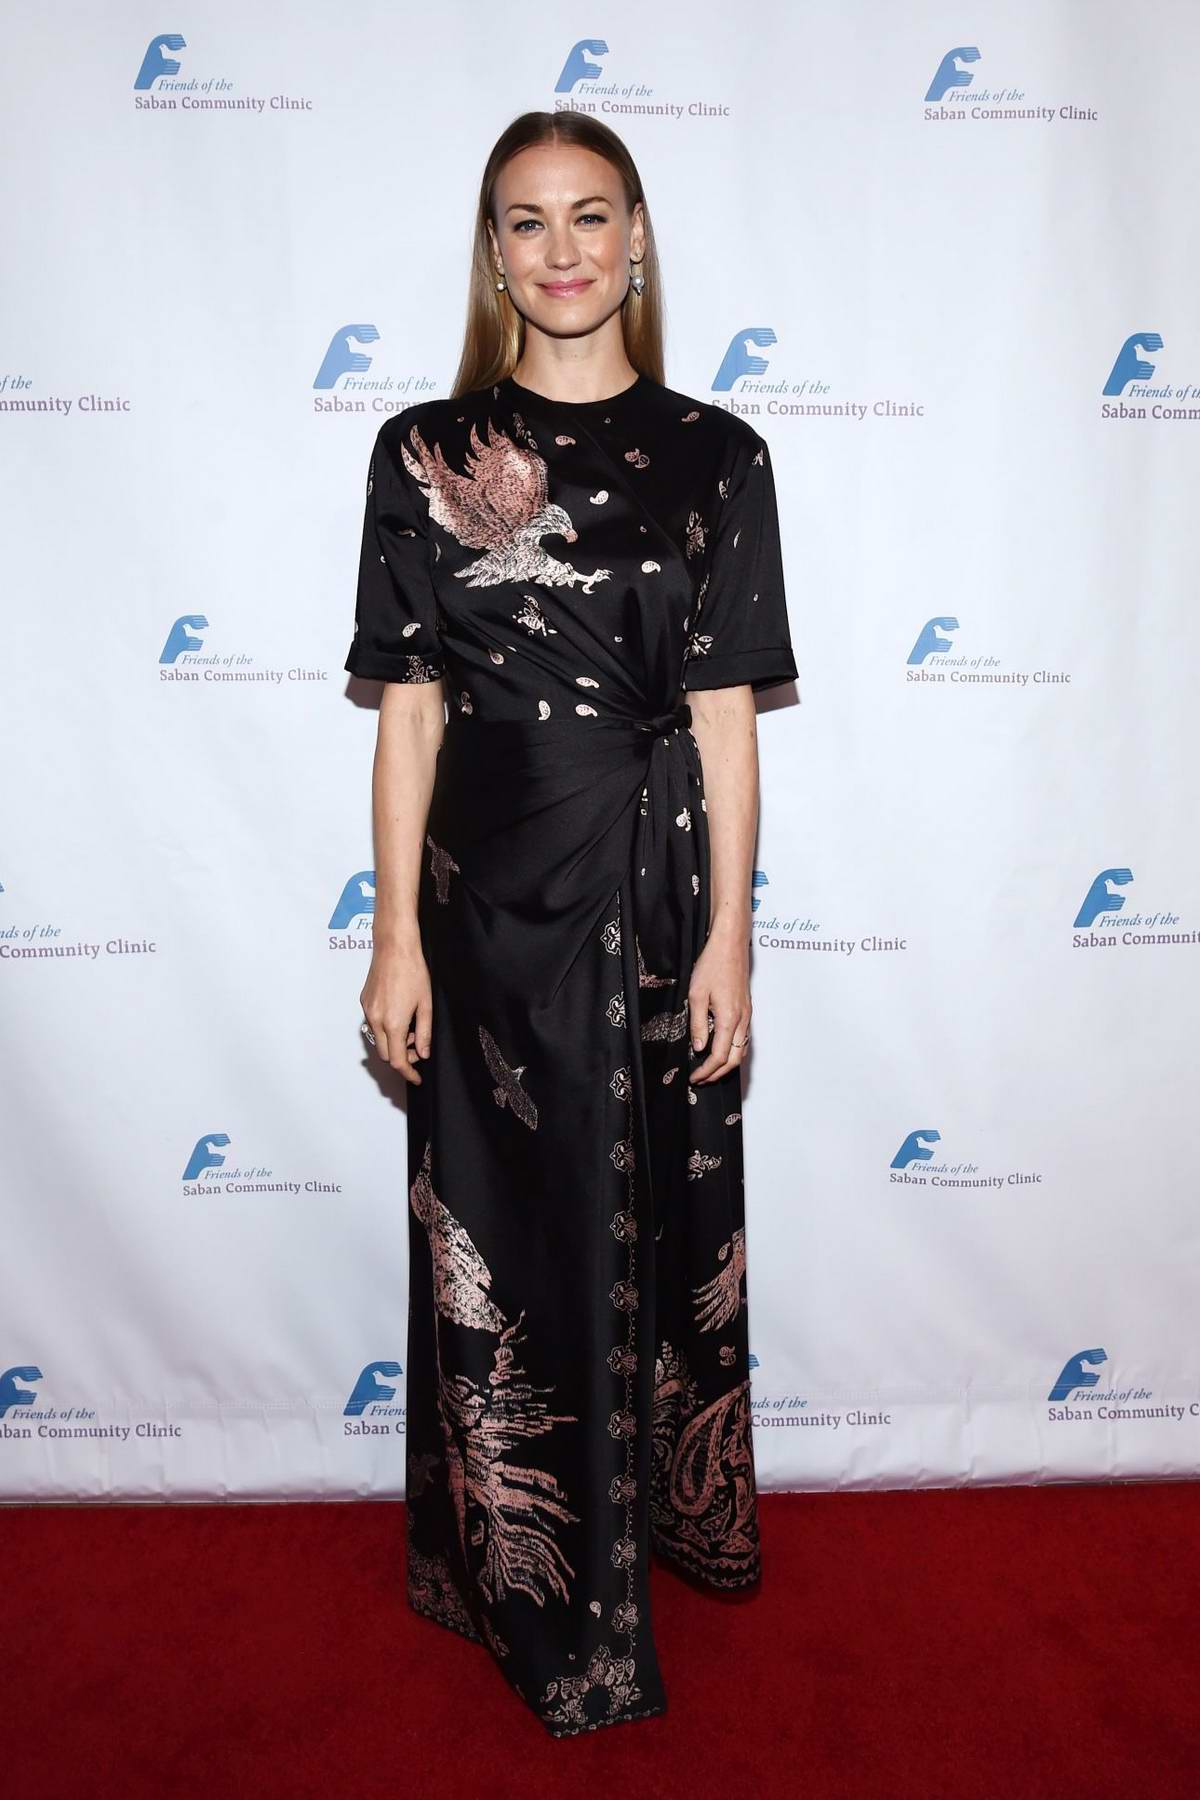 Yvonne Strahovski attends Saban Community Clinic's 43rd Annual Dinner Gala at The Beverly Hilton Hotel in Los Angeles